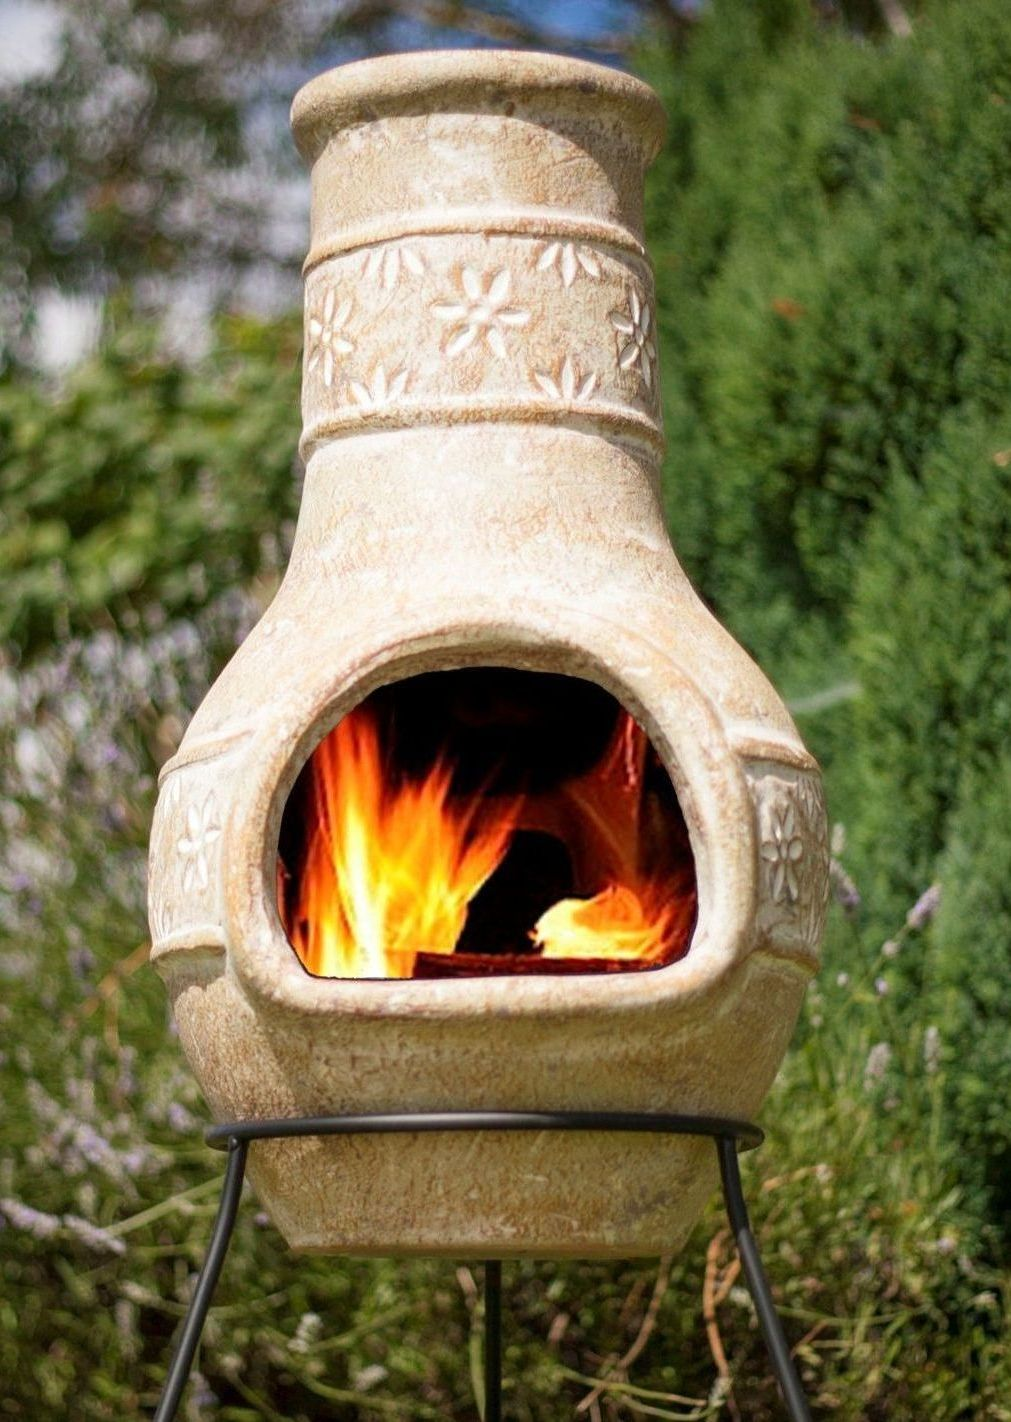 La Hacienda Clay Chimenea Chiminea - Star Flower Design